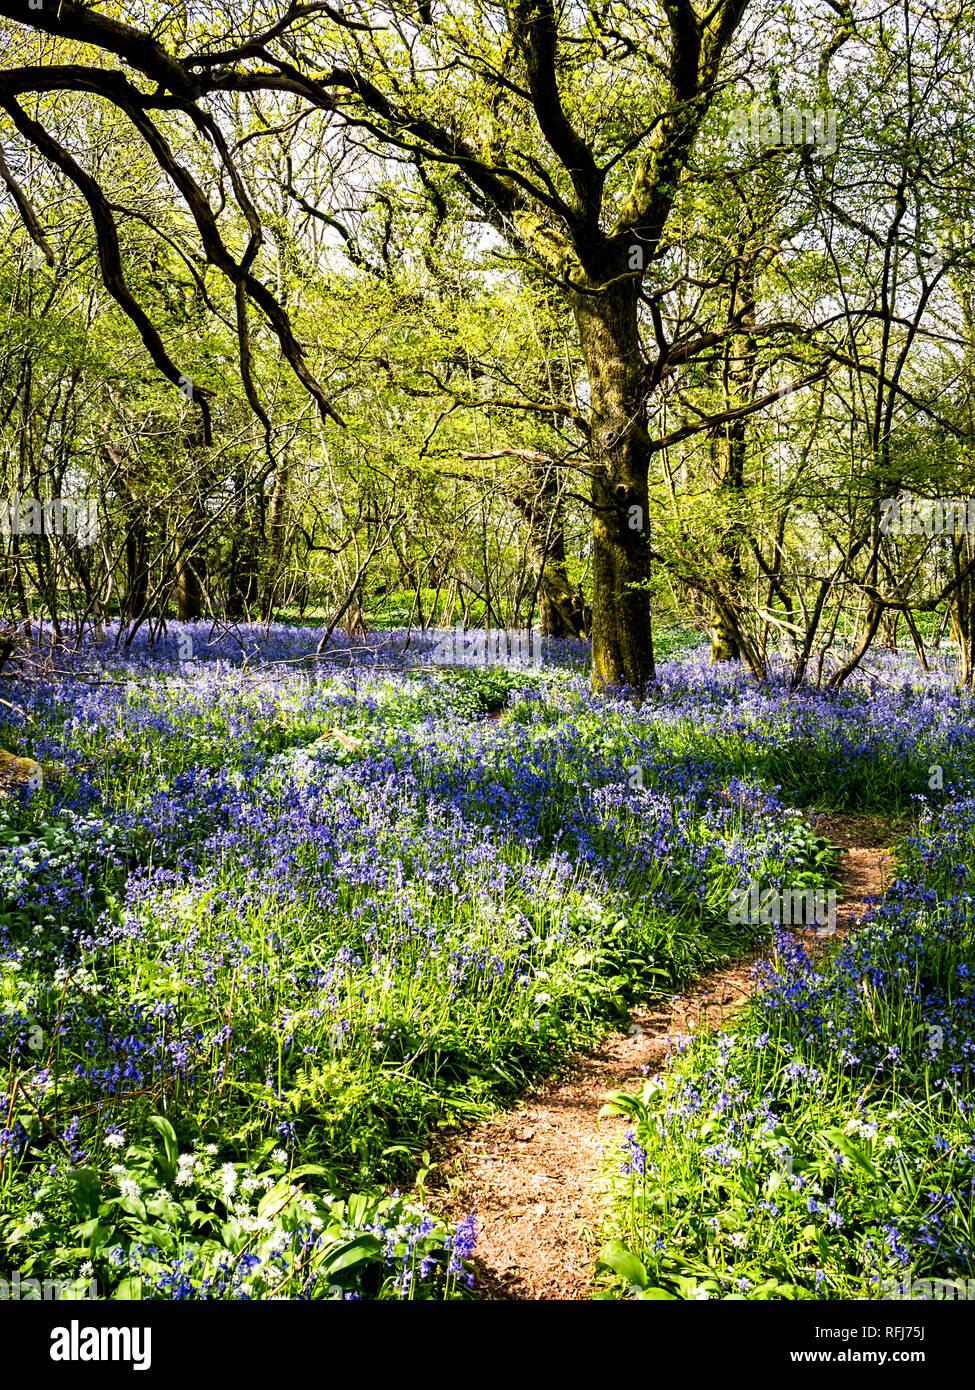 This is bluebell display in the woodlands alongside Garston Wood in Dorset. - Stock Image